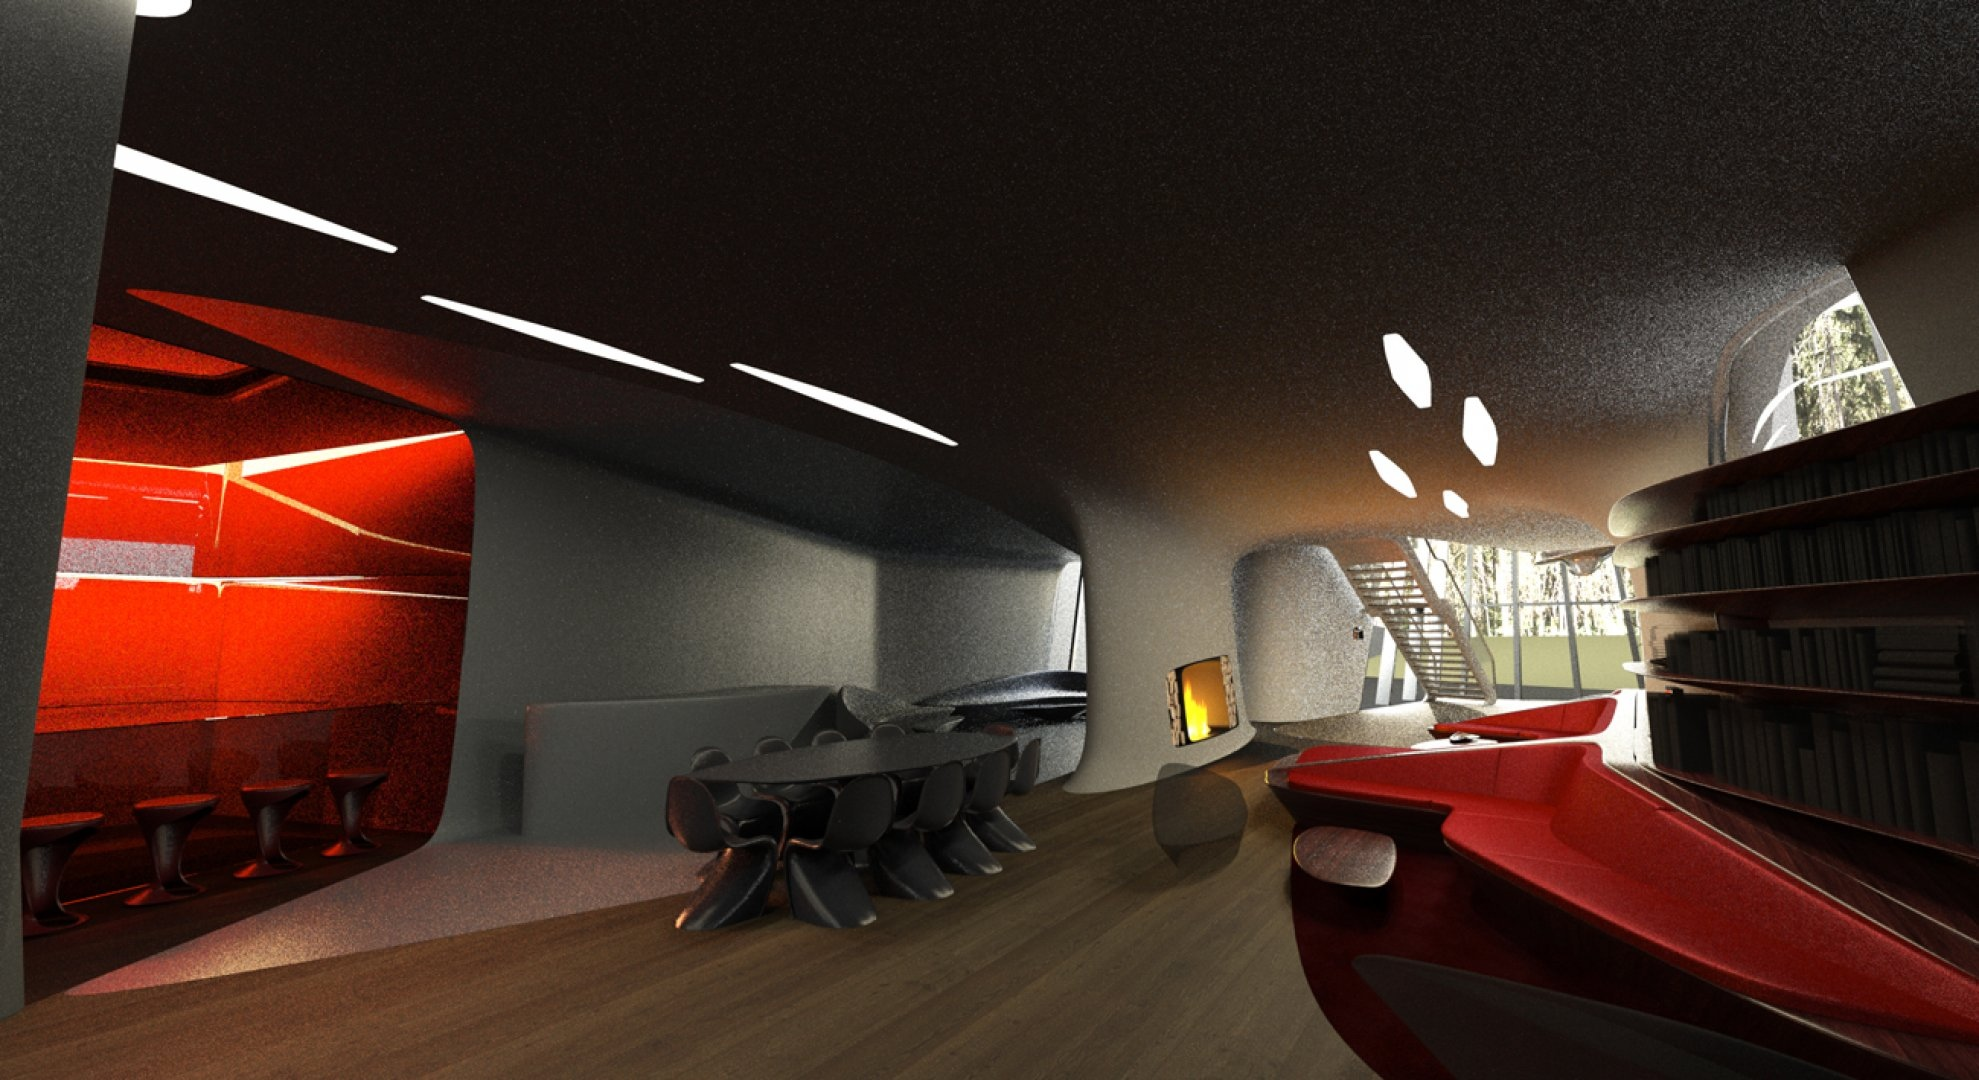 Space age interior interior design ideas for Space architecture and design